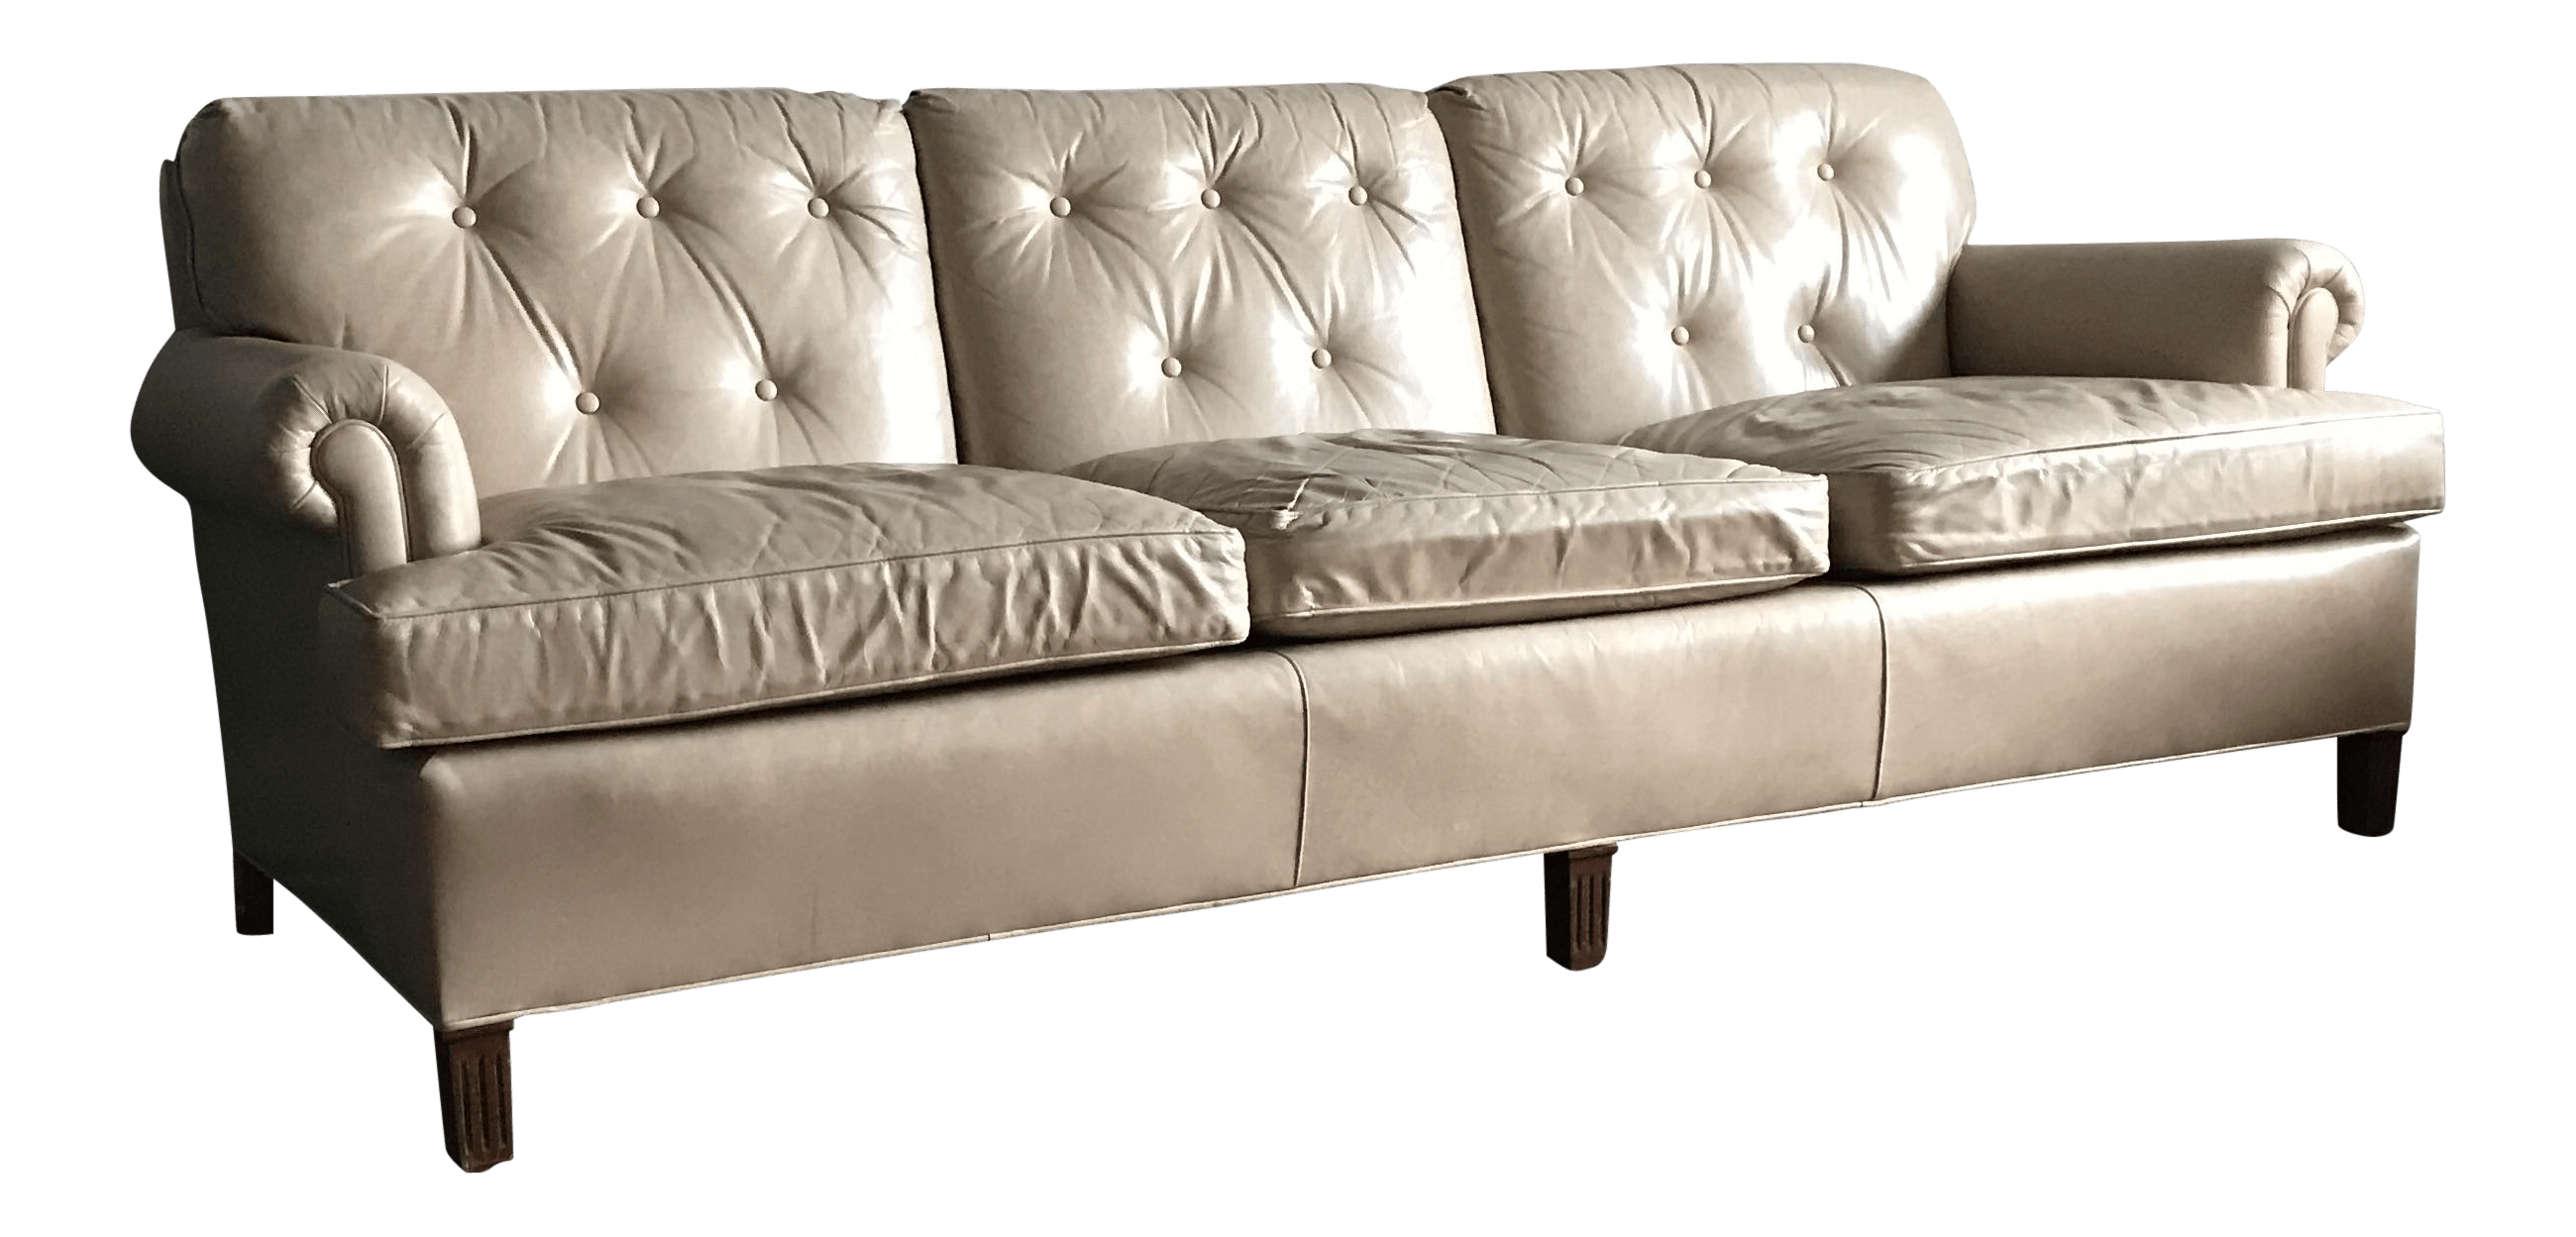 hancock leather sofa beds on gumtree london beige by and moore chairish